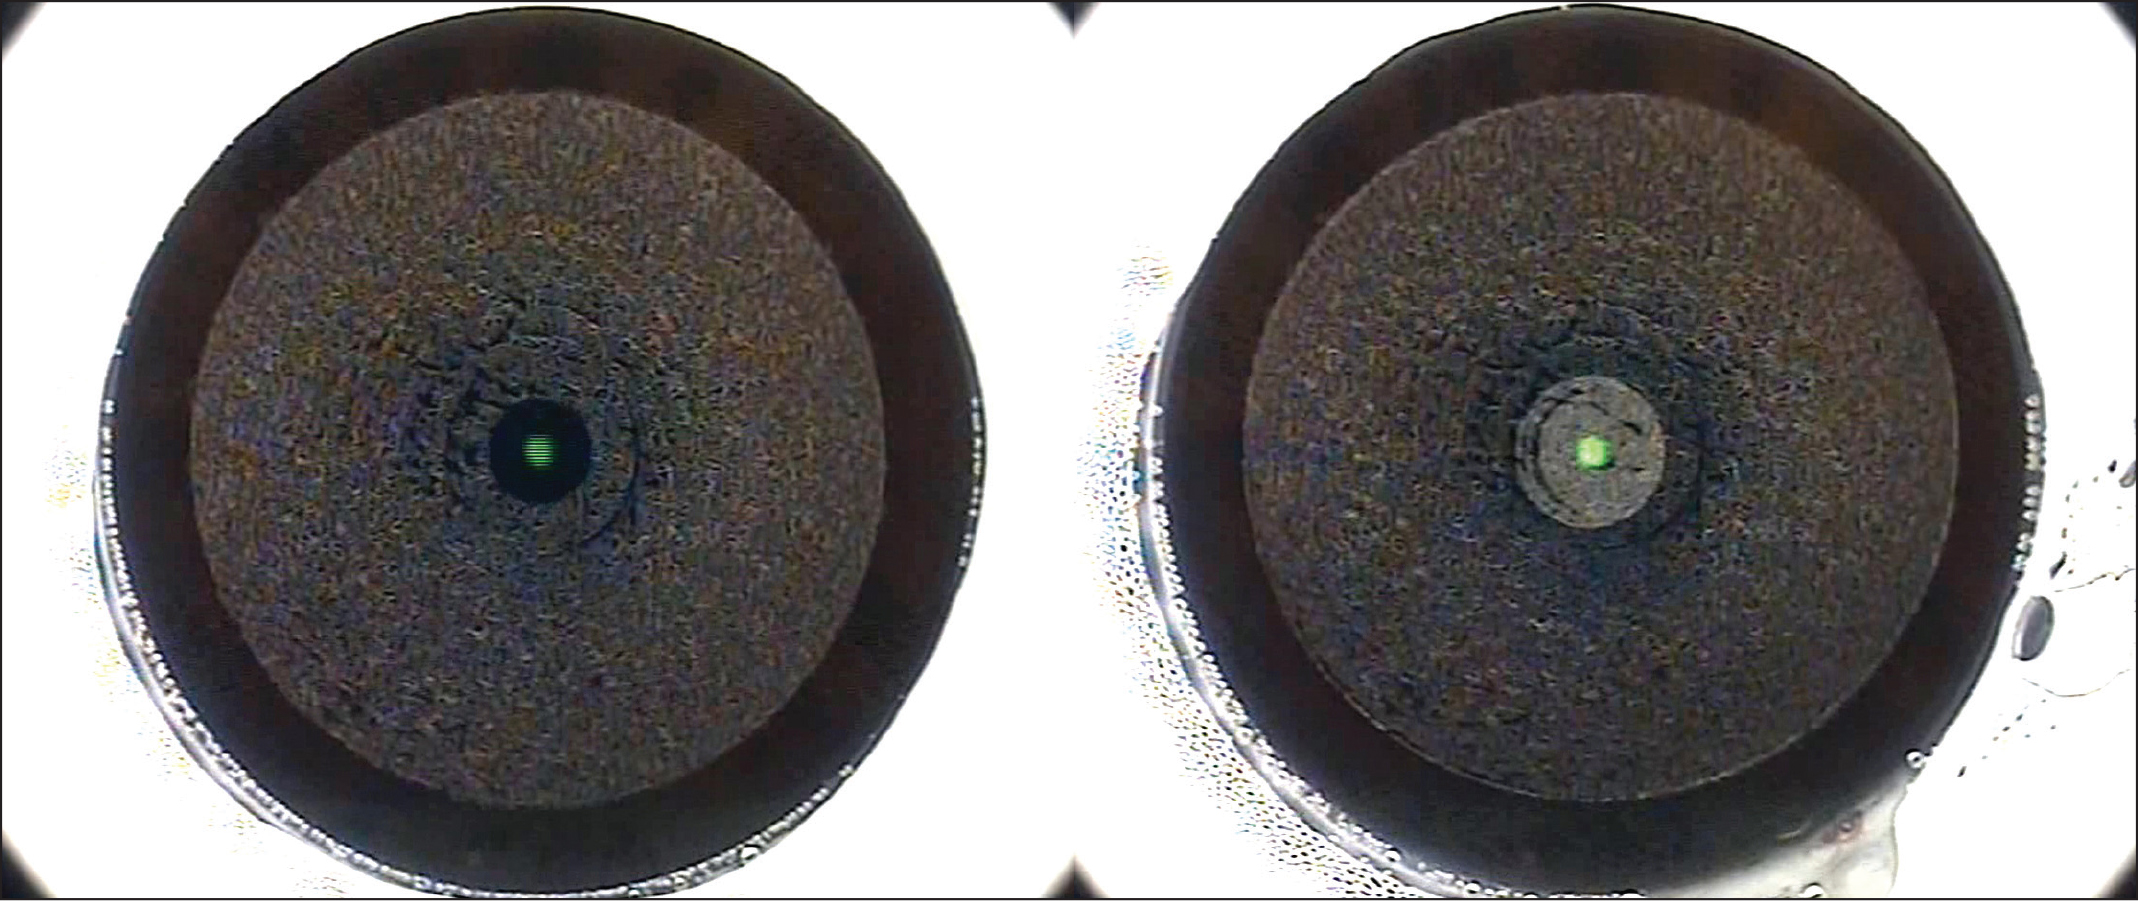 Pair of images showing a crescent discontinuity (left image) created in the lenticule interface centrally due to a large eye movement caused by an anxious patient squeezing the eye. The surgeon attempted to continue the femtosecond laser cutting, but another eye movement as the cap interface was started created a second discontinuity (right image), at which point the small incision lenticule extraction procedure was aborted and converted to laser in situ keratomileusis (LASIK). Reprinted with permission from Reinstein DZ, Archer TJ, Carp GI. The Surgeon's Guide to SMILE: Small Incision Lenticule Extraction. Thorofare, NJ: SLACK Incorporated; 2018.